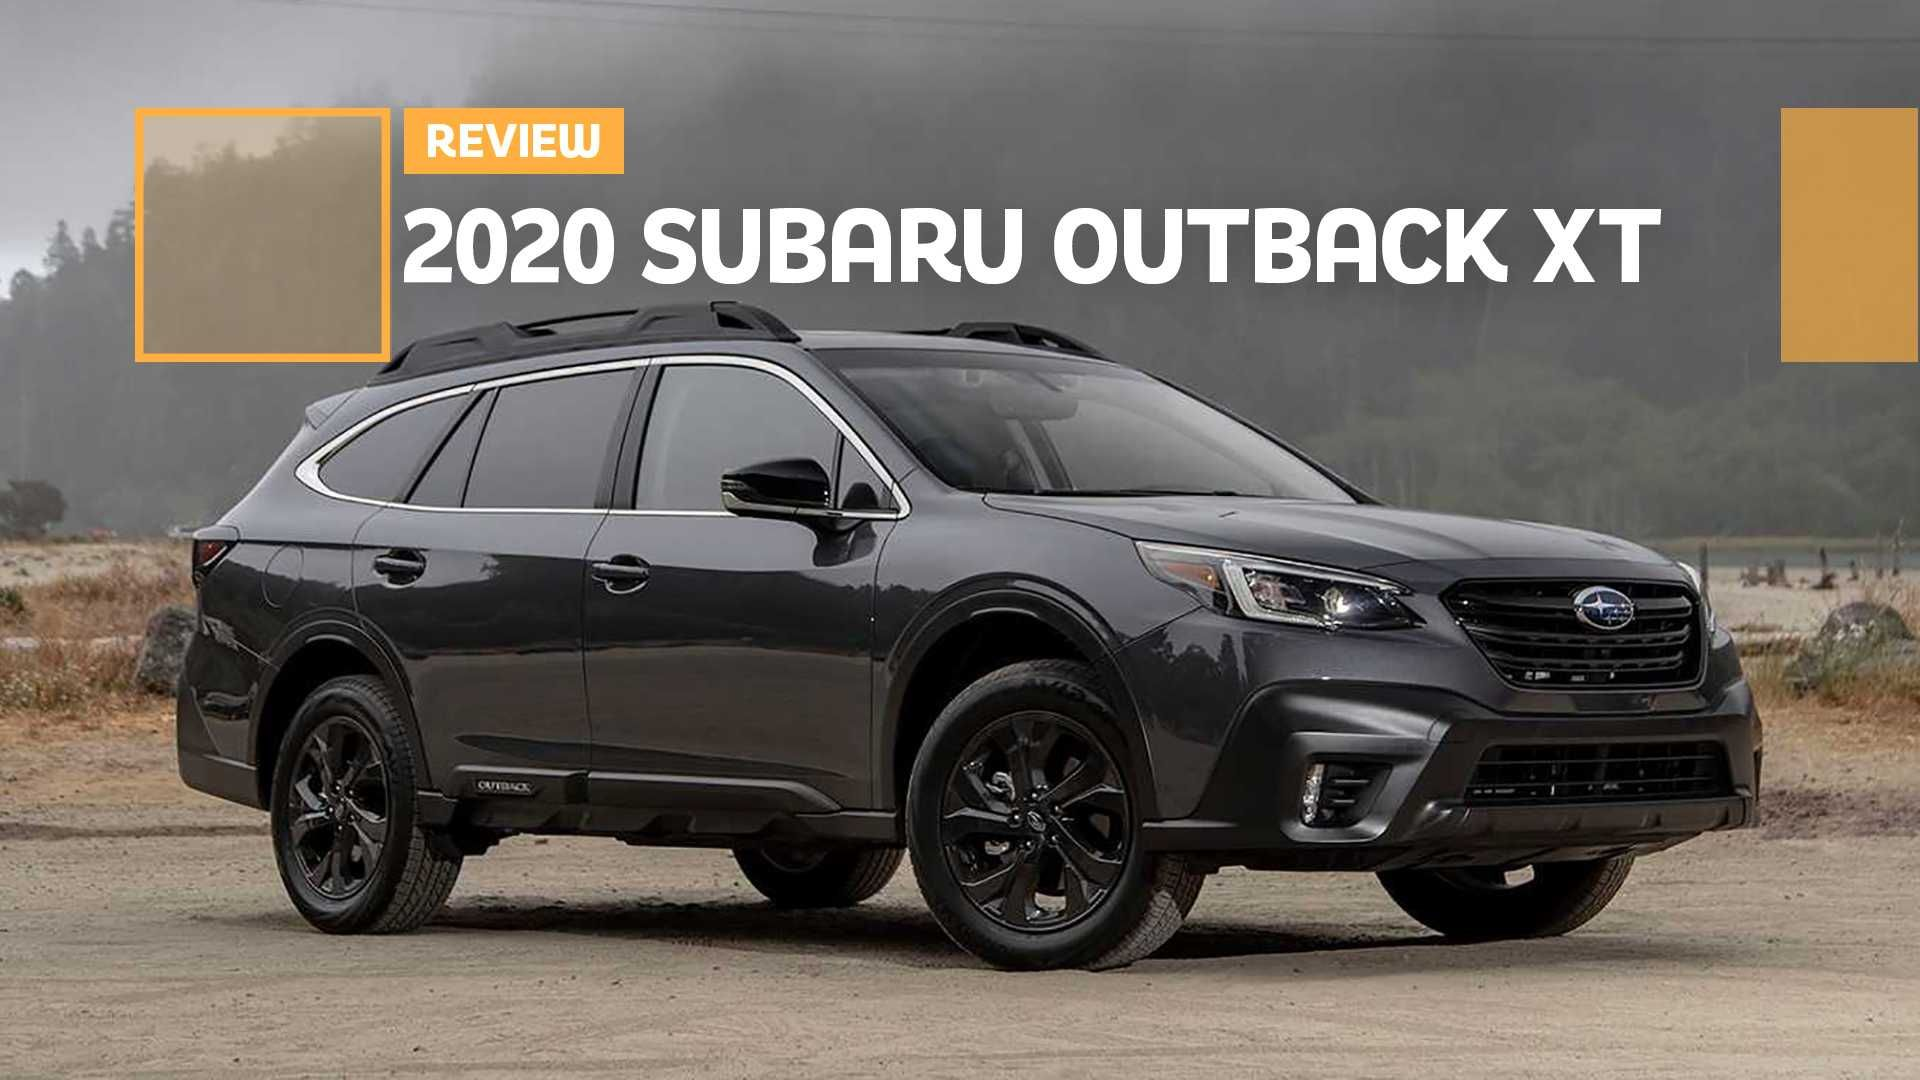 22 The 2020 Subaru Outback Interior Di 2020